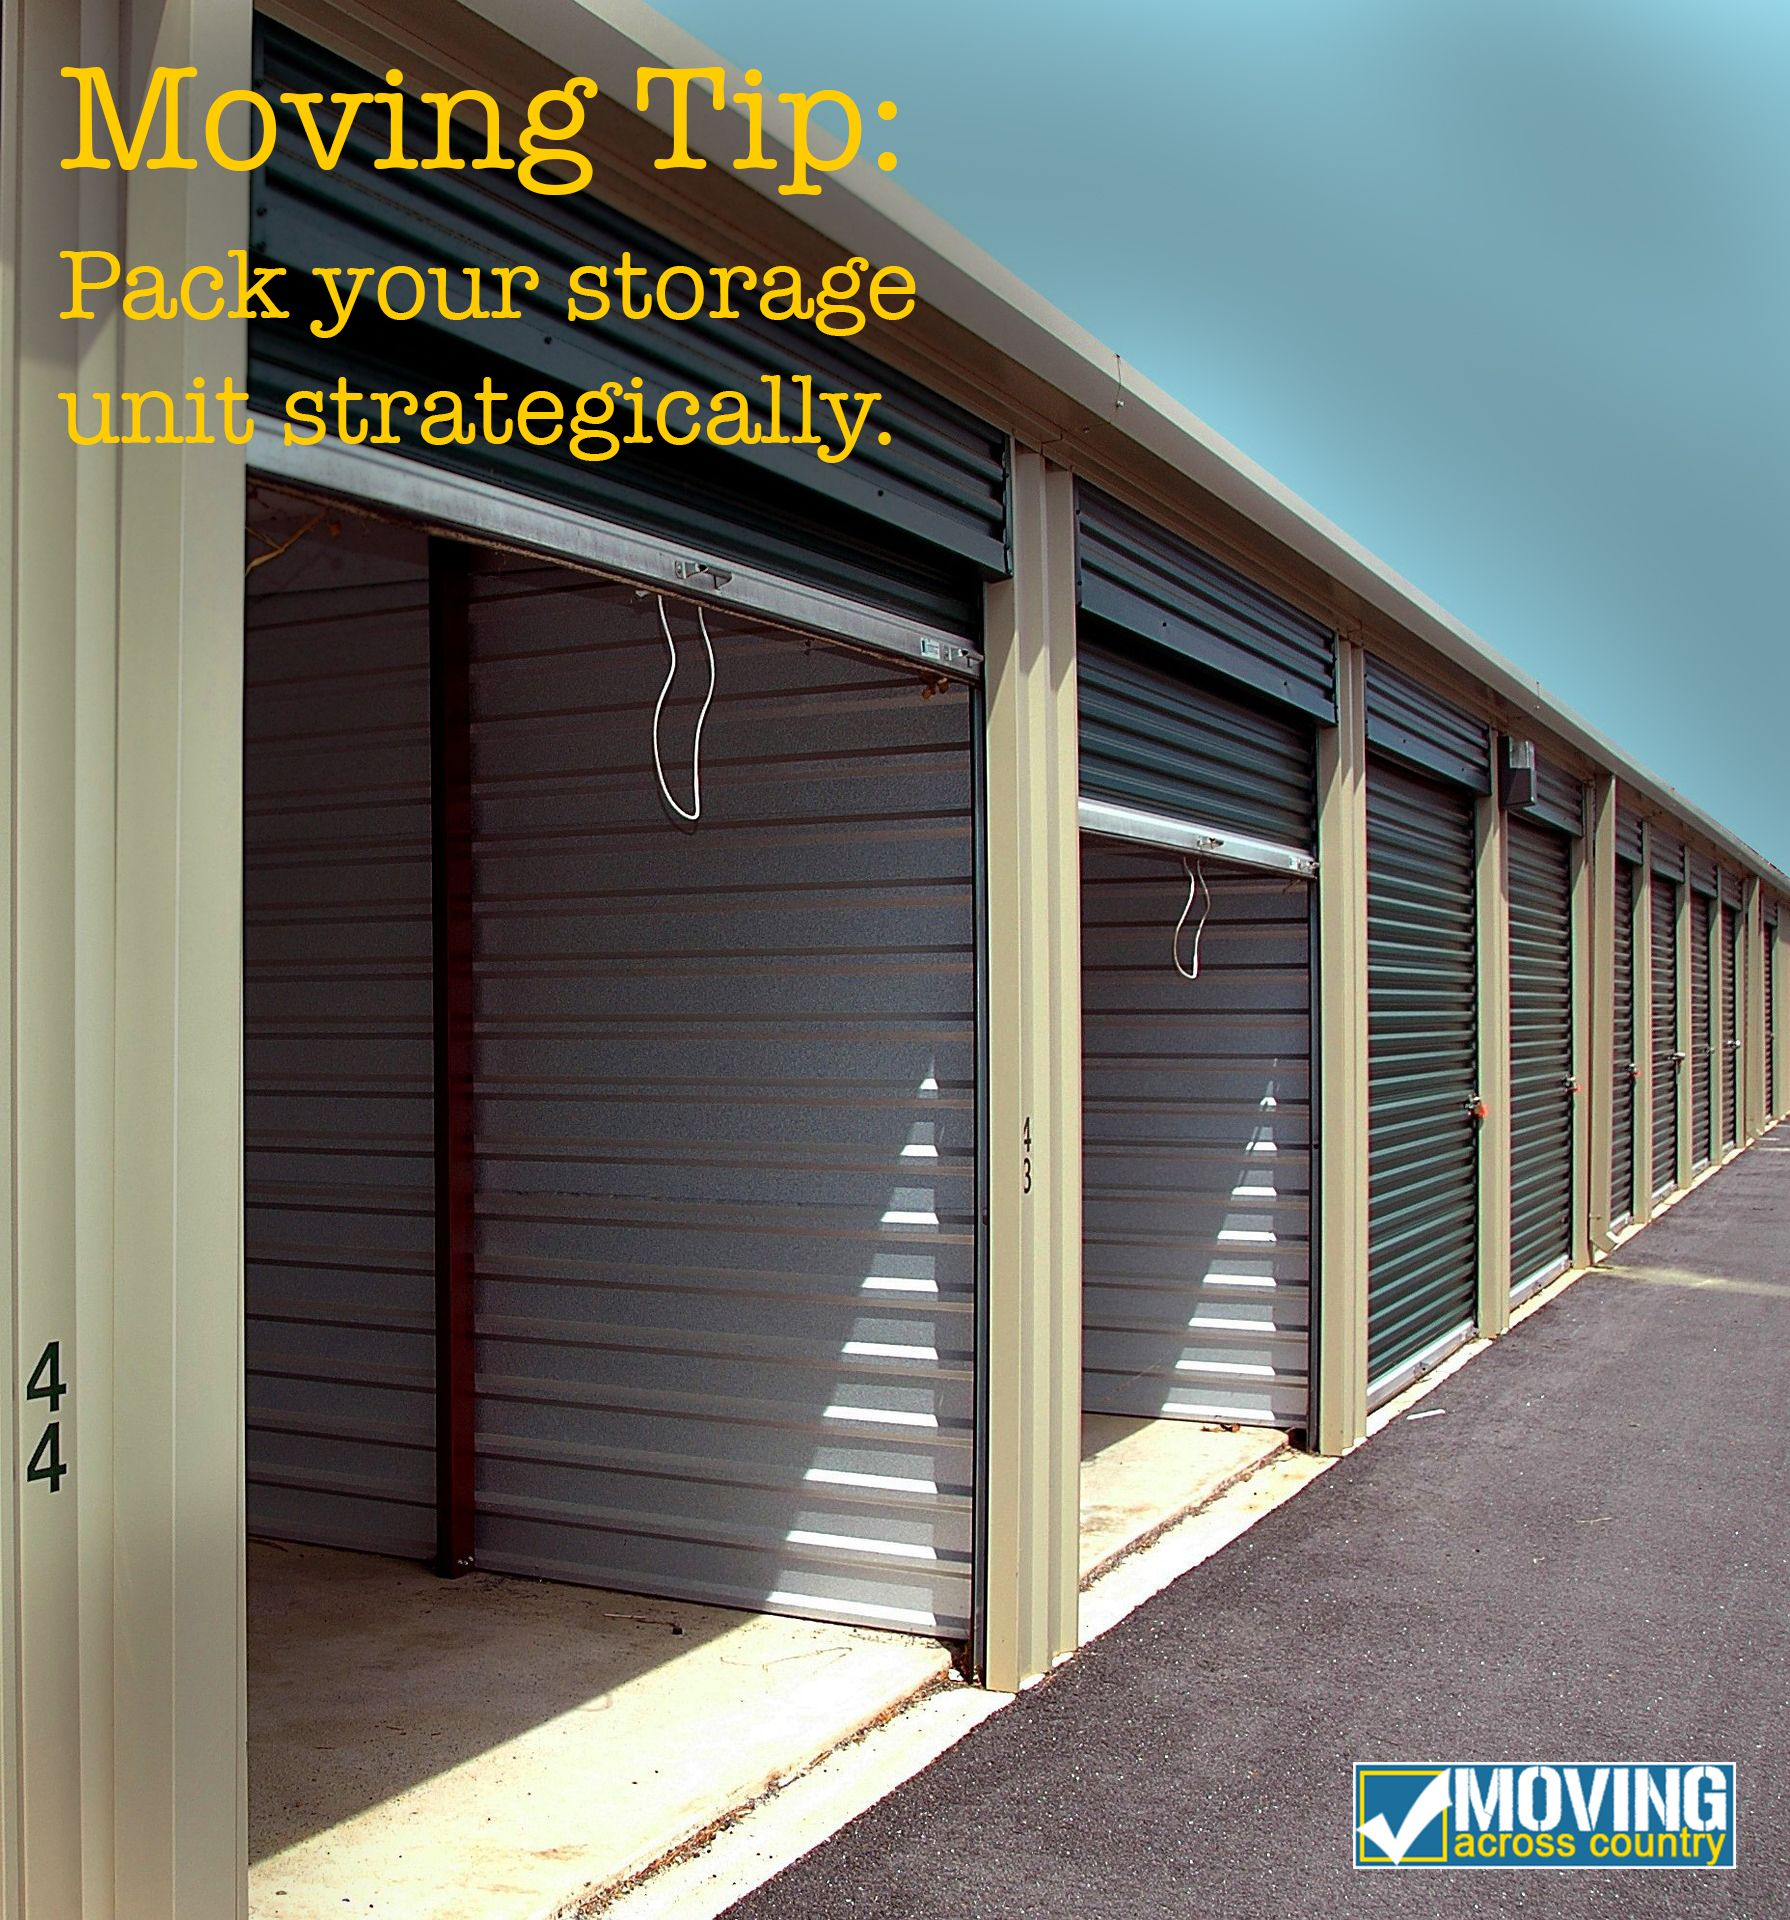 Put The Heavy Stuff Low The Lighter Stuff High And Be Sure To Pad Your Furniture Self Storage Container House Storage Container Homes